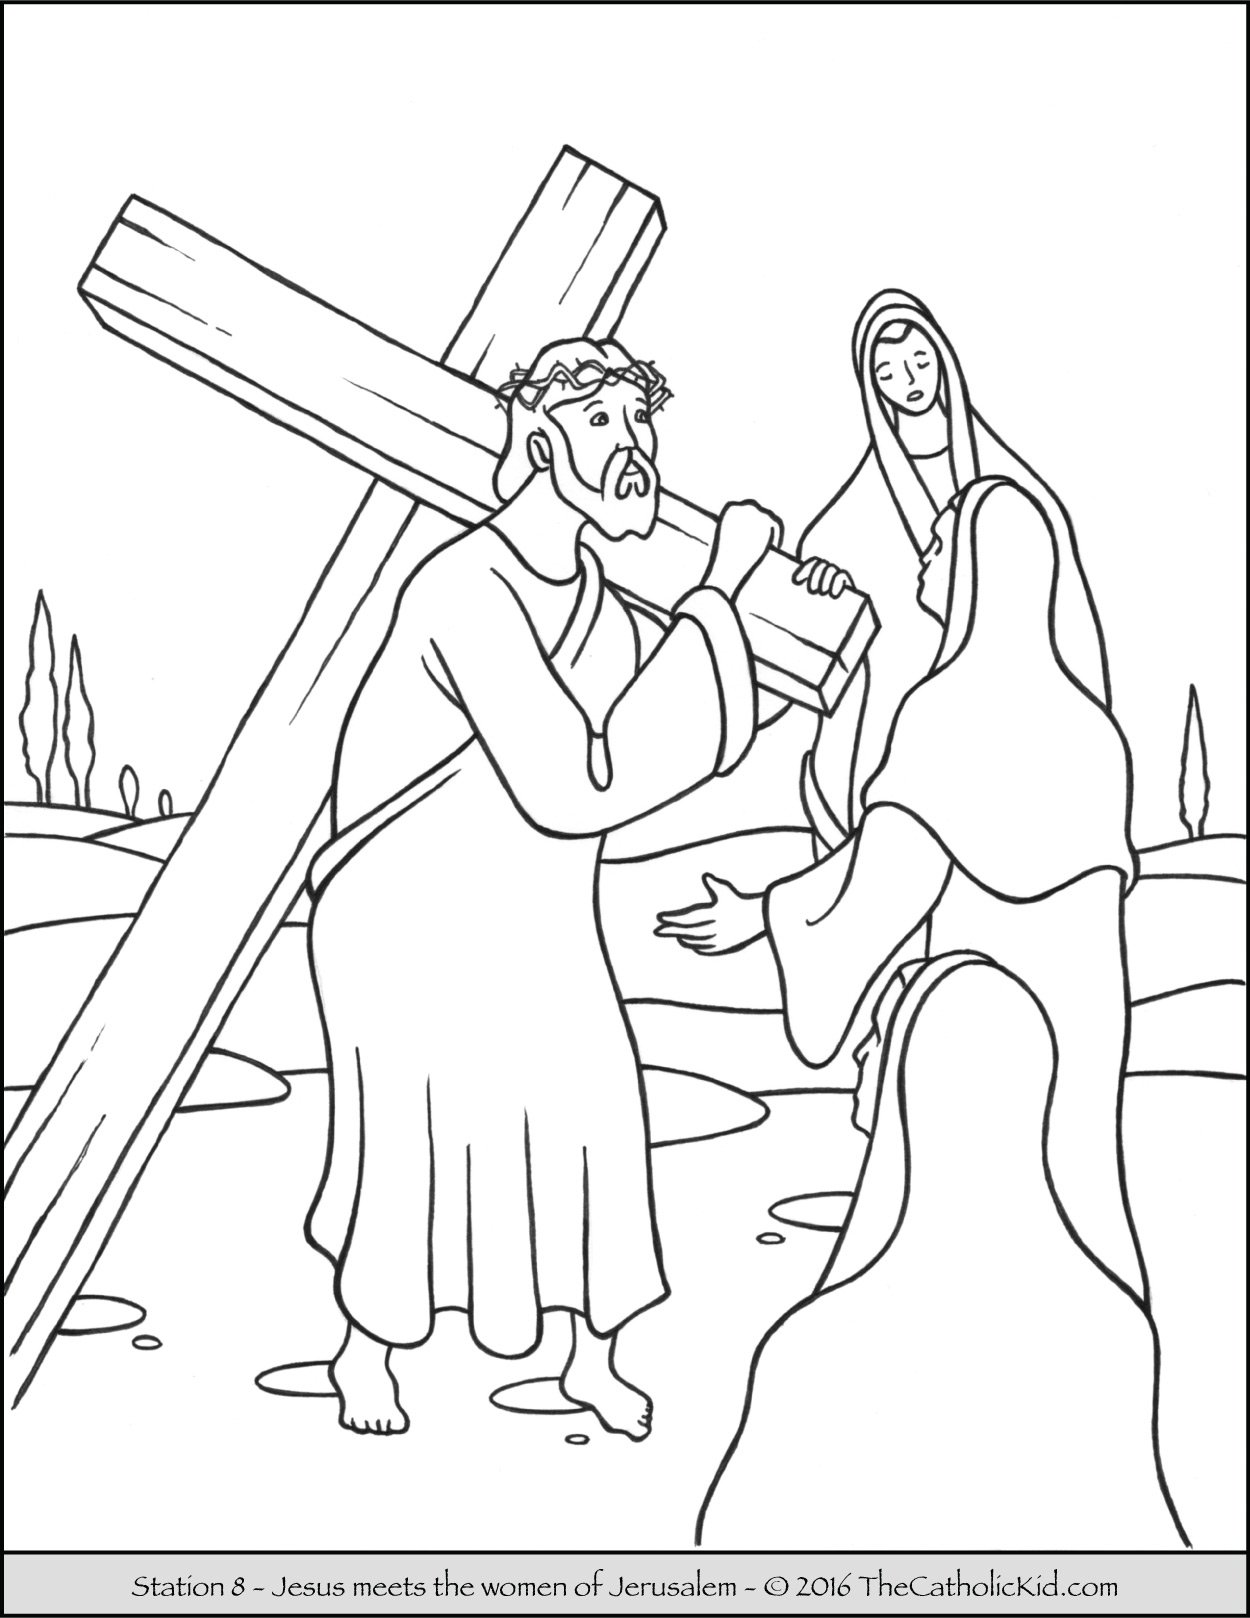 Stations Of The Cross Coloring Pages Mesmerizing Stations Of The Cross Coloring Pages  The Catholic Kid Inspiration